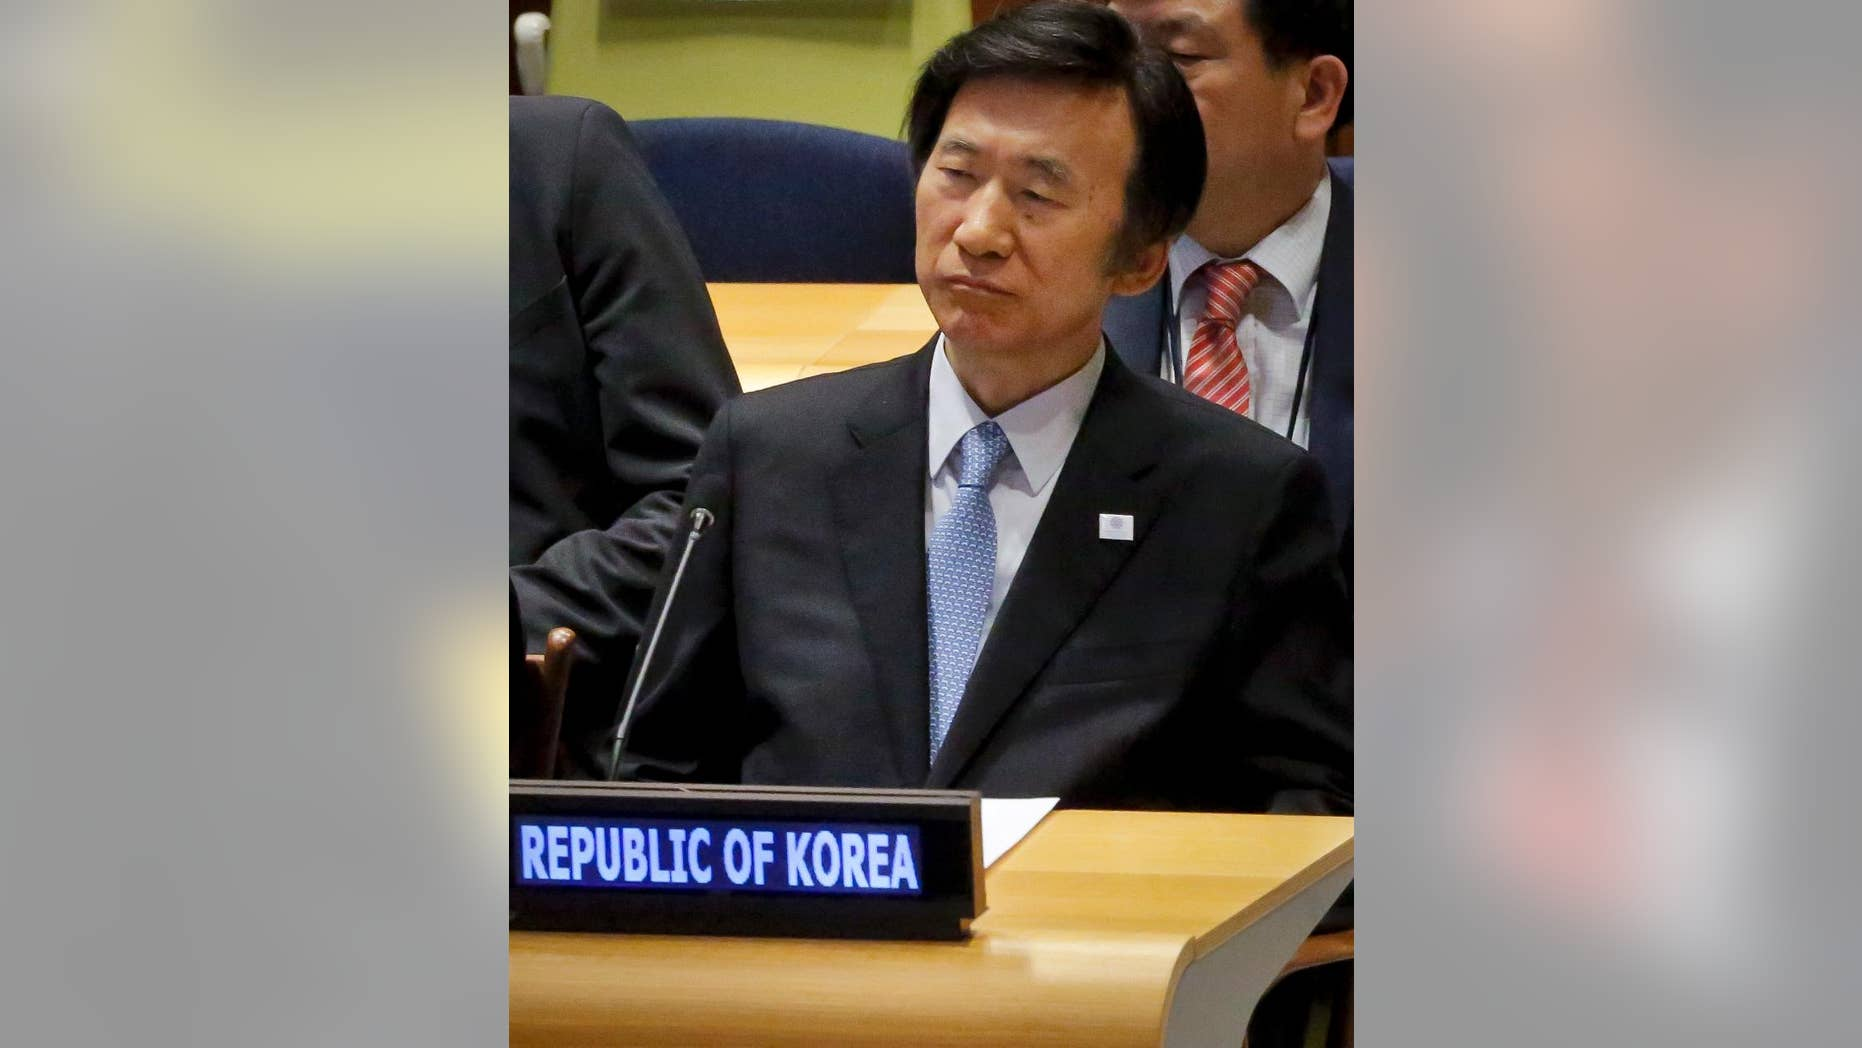 South Korea's Foreign Minister Yun Byung-se listens during the Leader's Summit on Refugees at the 71st session of the General Assembly, Tuesday Sept. 20, 2016 at U.N. headquarters. (AP Photo/Bebeto Matthews)